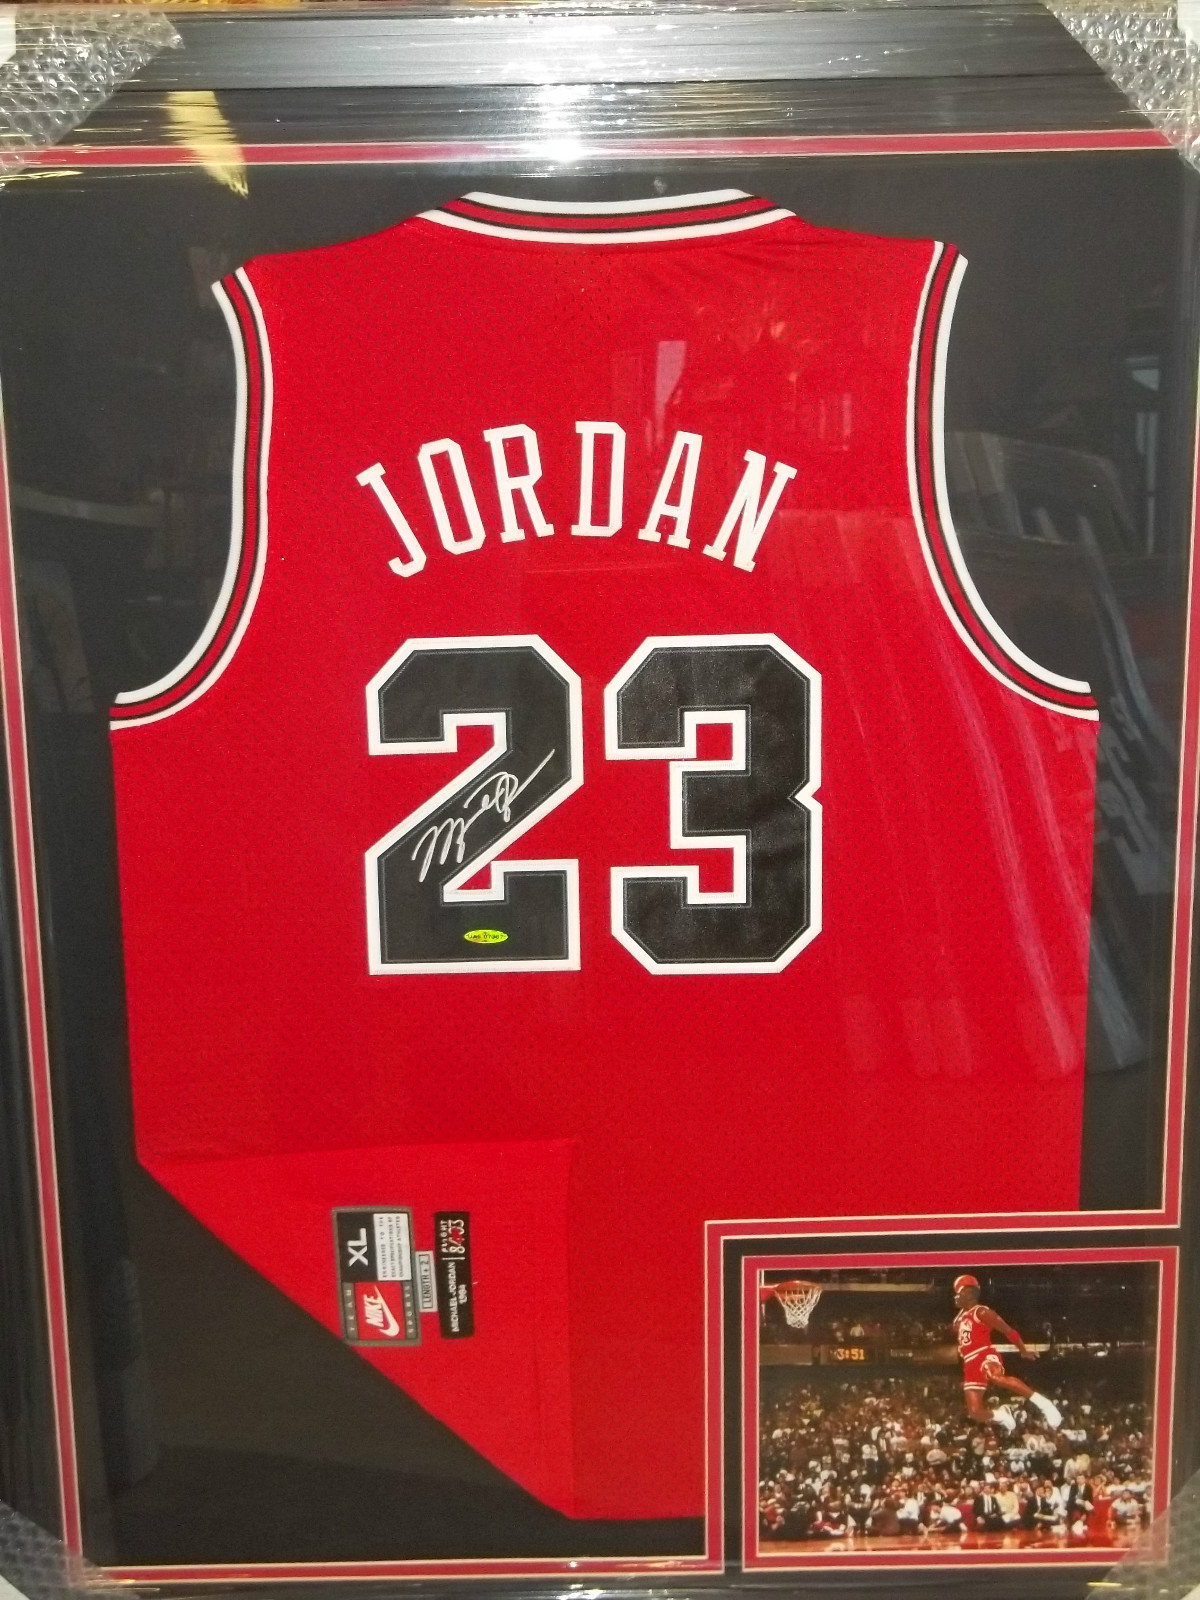 5623b4efcd6c Signed Jersey Pricing  Active Listings for Michael Jordan Signed Jerseys